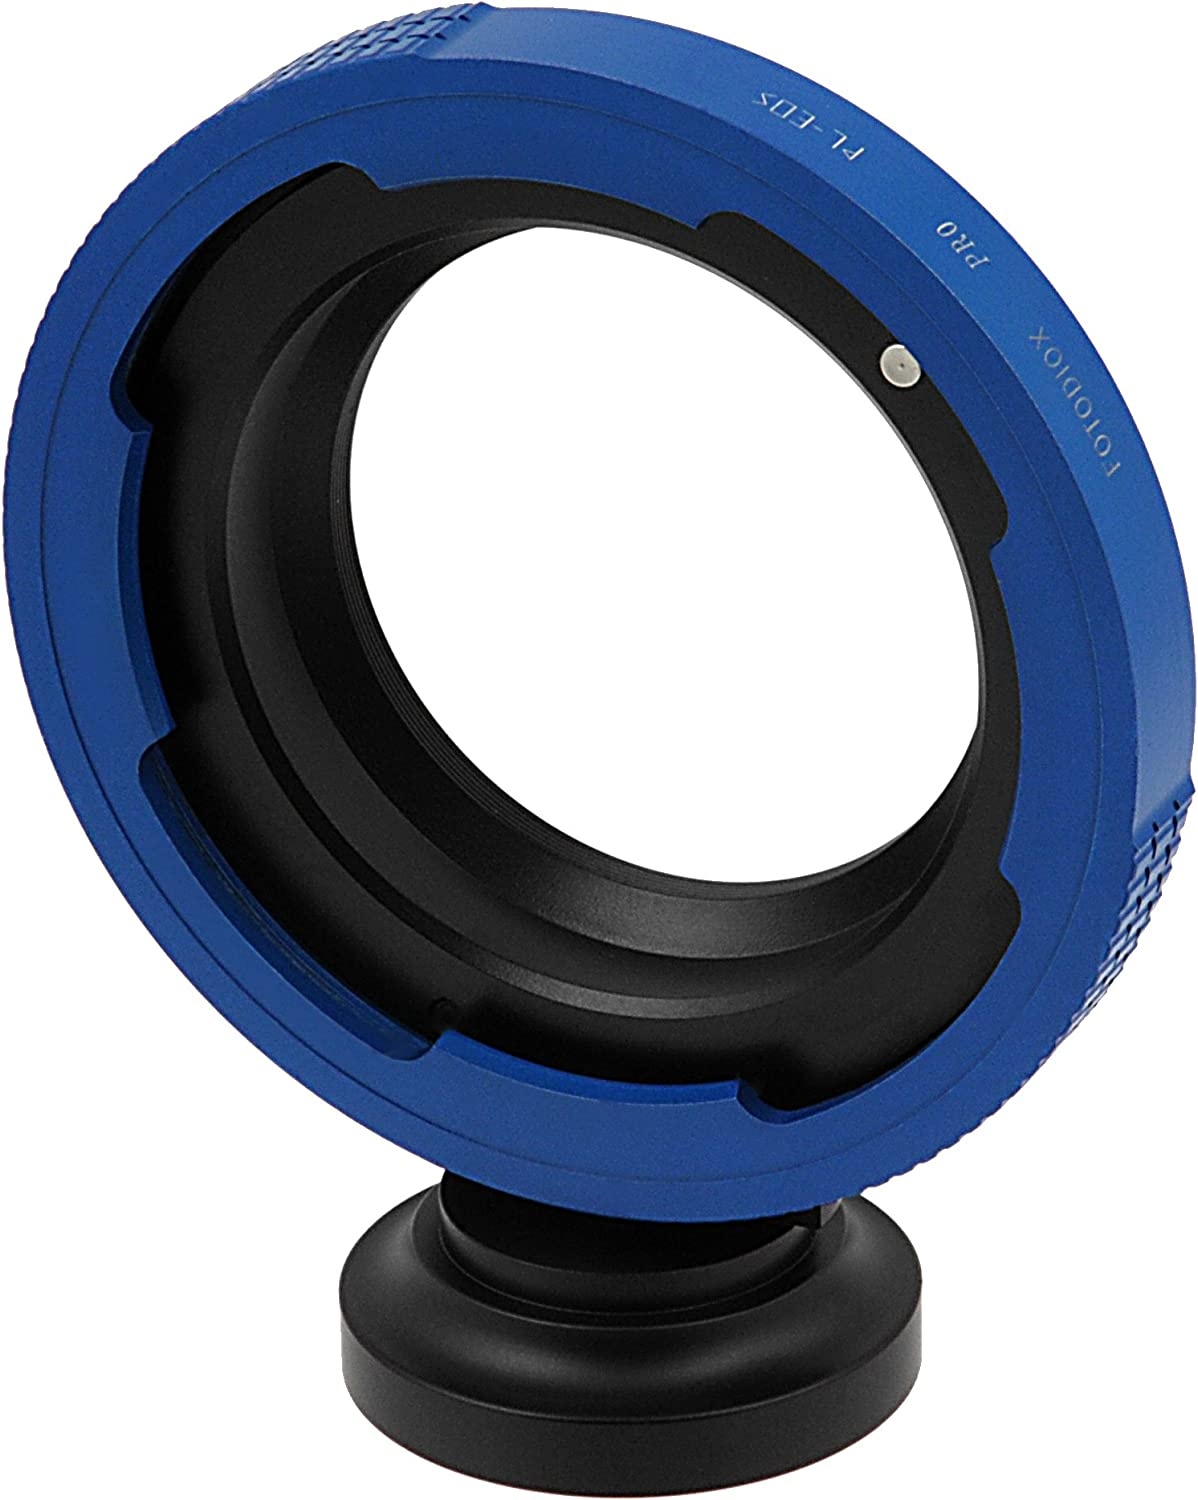 Compatible with Arri PL Lenses to Canon EOS EF//EF-S Cameras Fotodiox Pro Lens Mount Adapter Blue Ver.